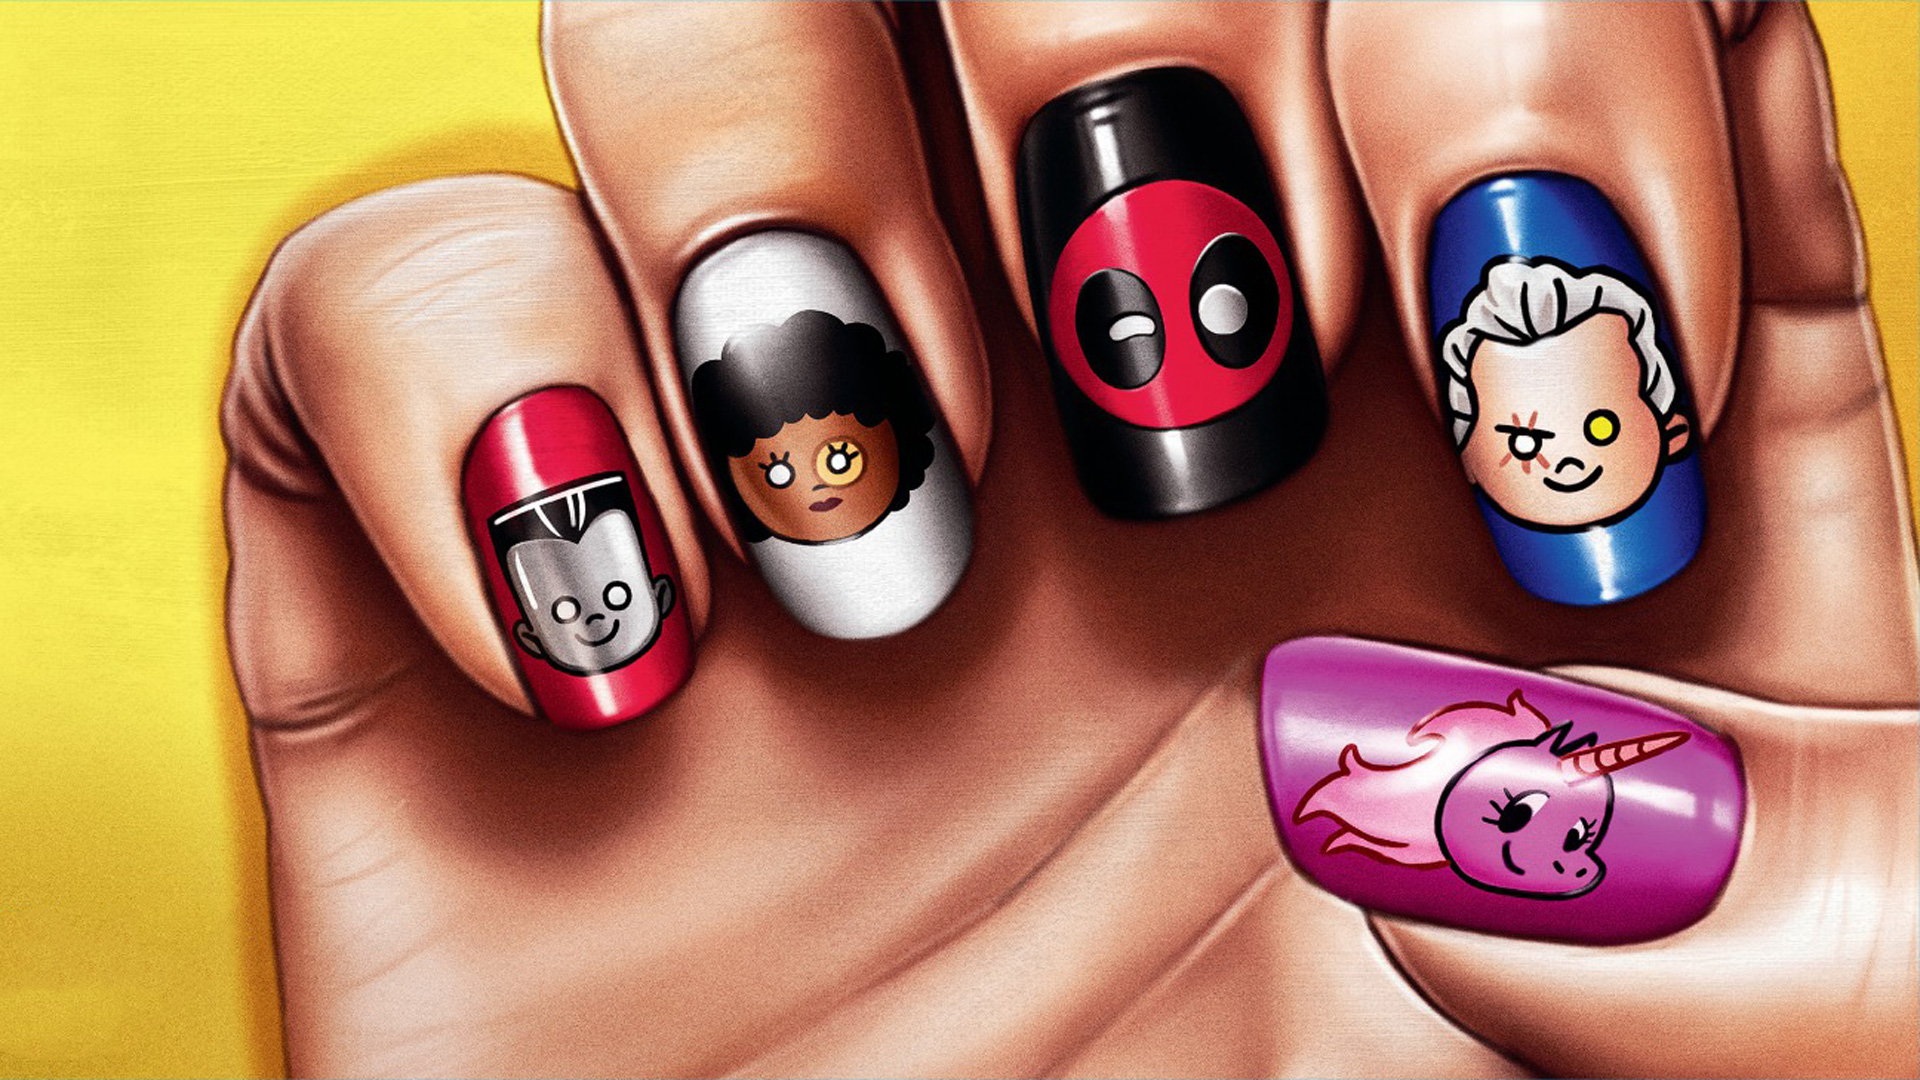 Deadpool 2 Movie Nail Paint Poster - Deadpool 2 Movie Nail Paint Poster - Wallpapers, 4k